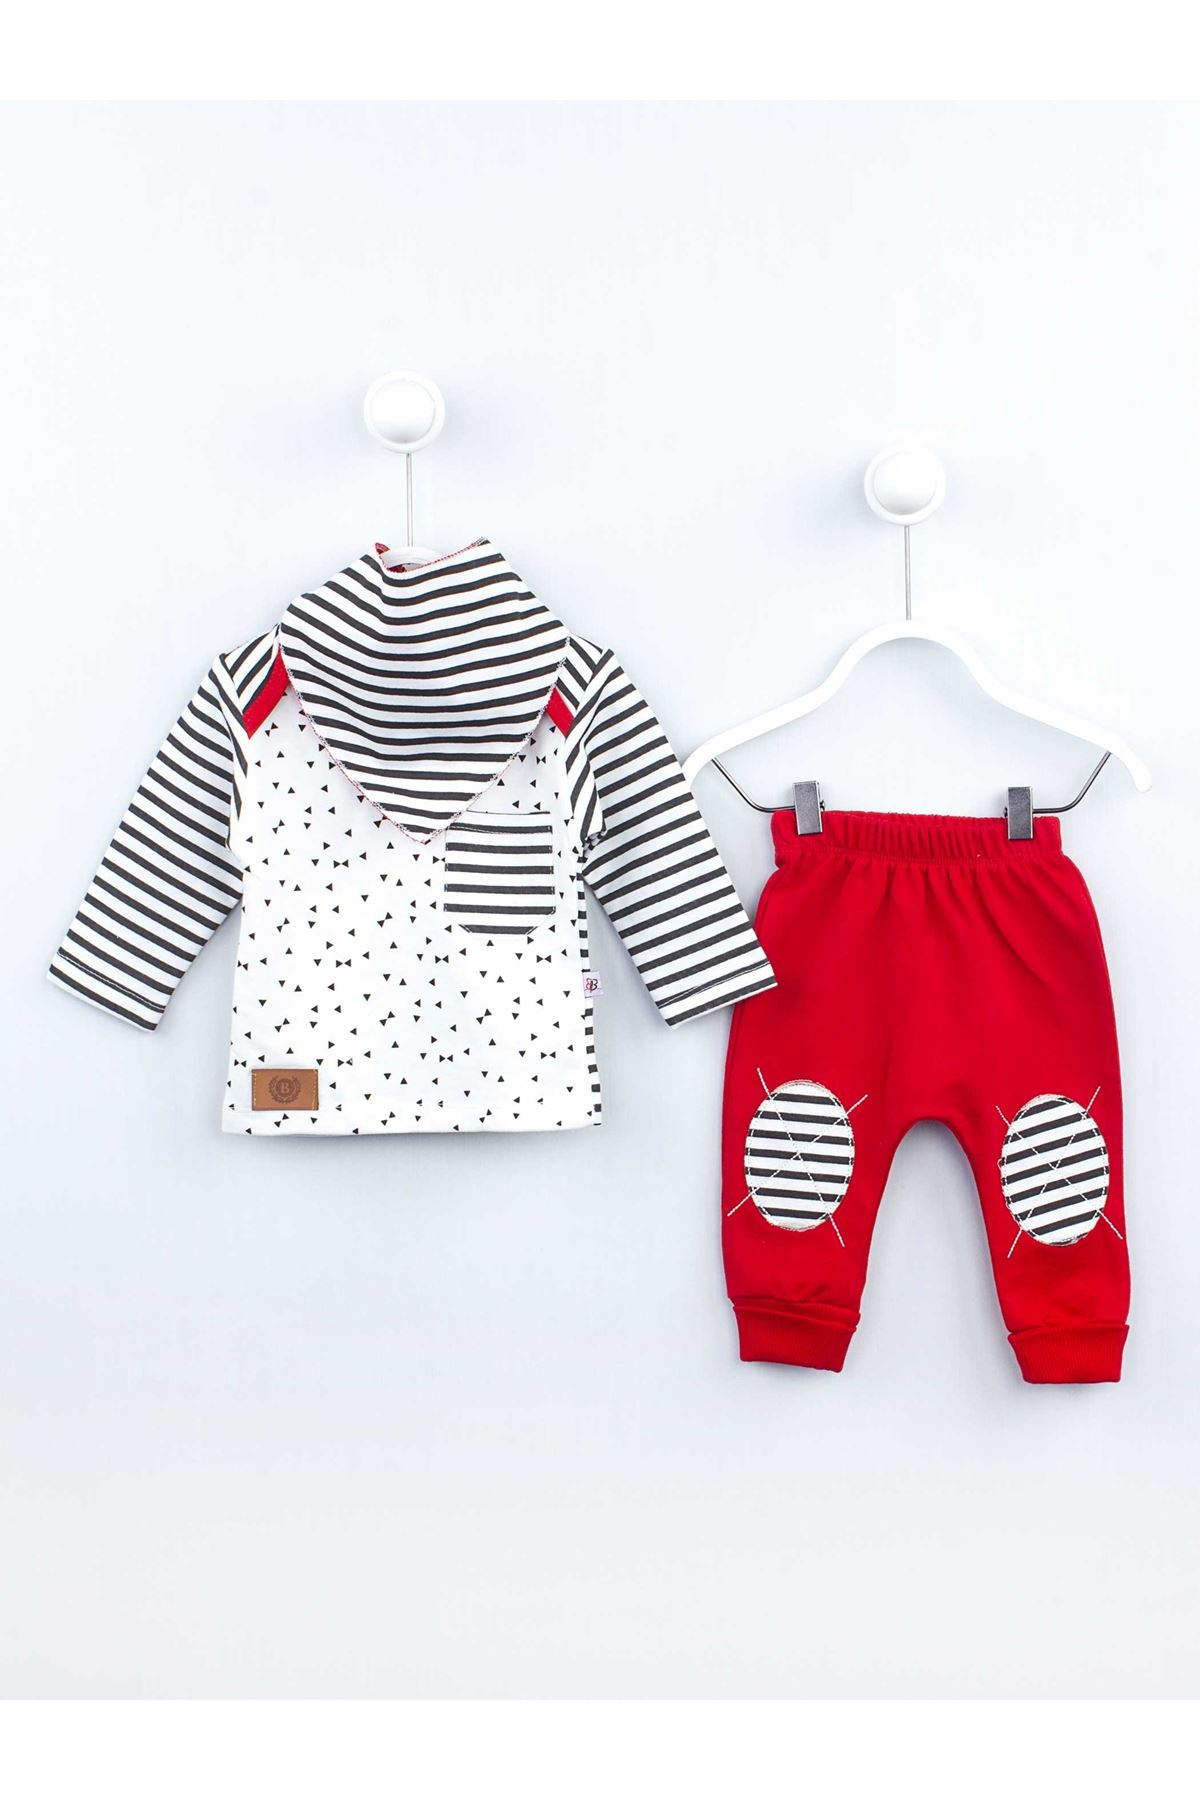 Red baby boy girl 3 piece suit set cotton daily casual babies clothing outfit girls boys style fashion models